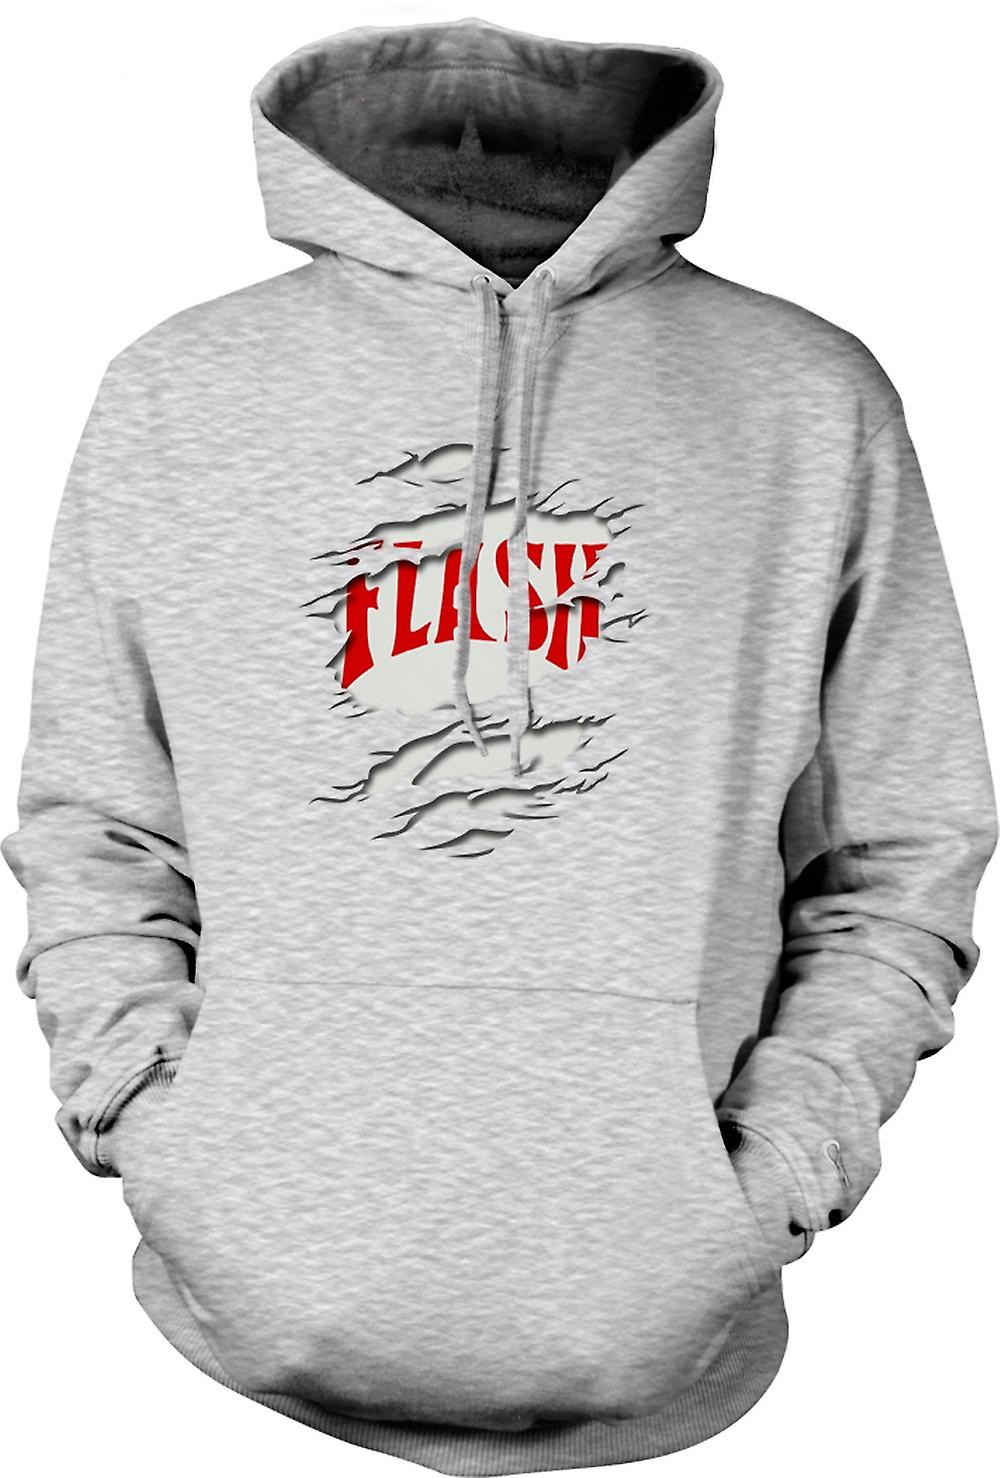 Mens-Hoodie - Flash Gordon - Effekt Riss